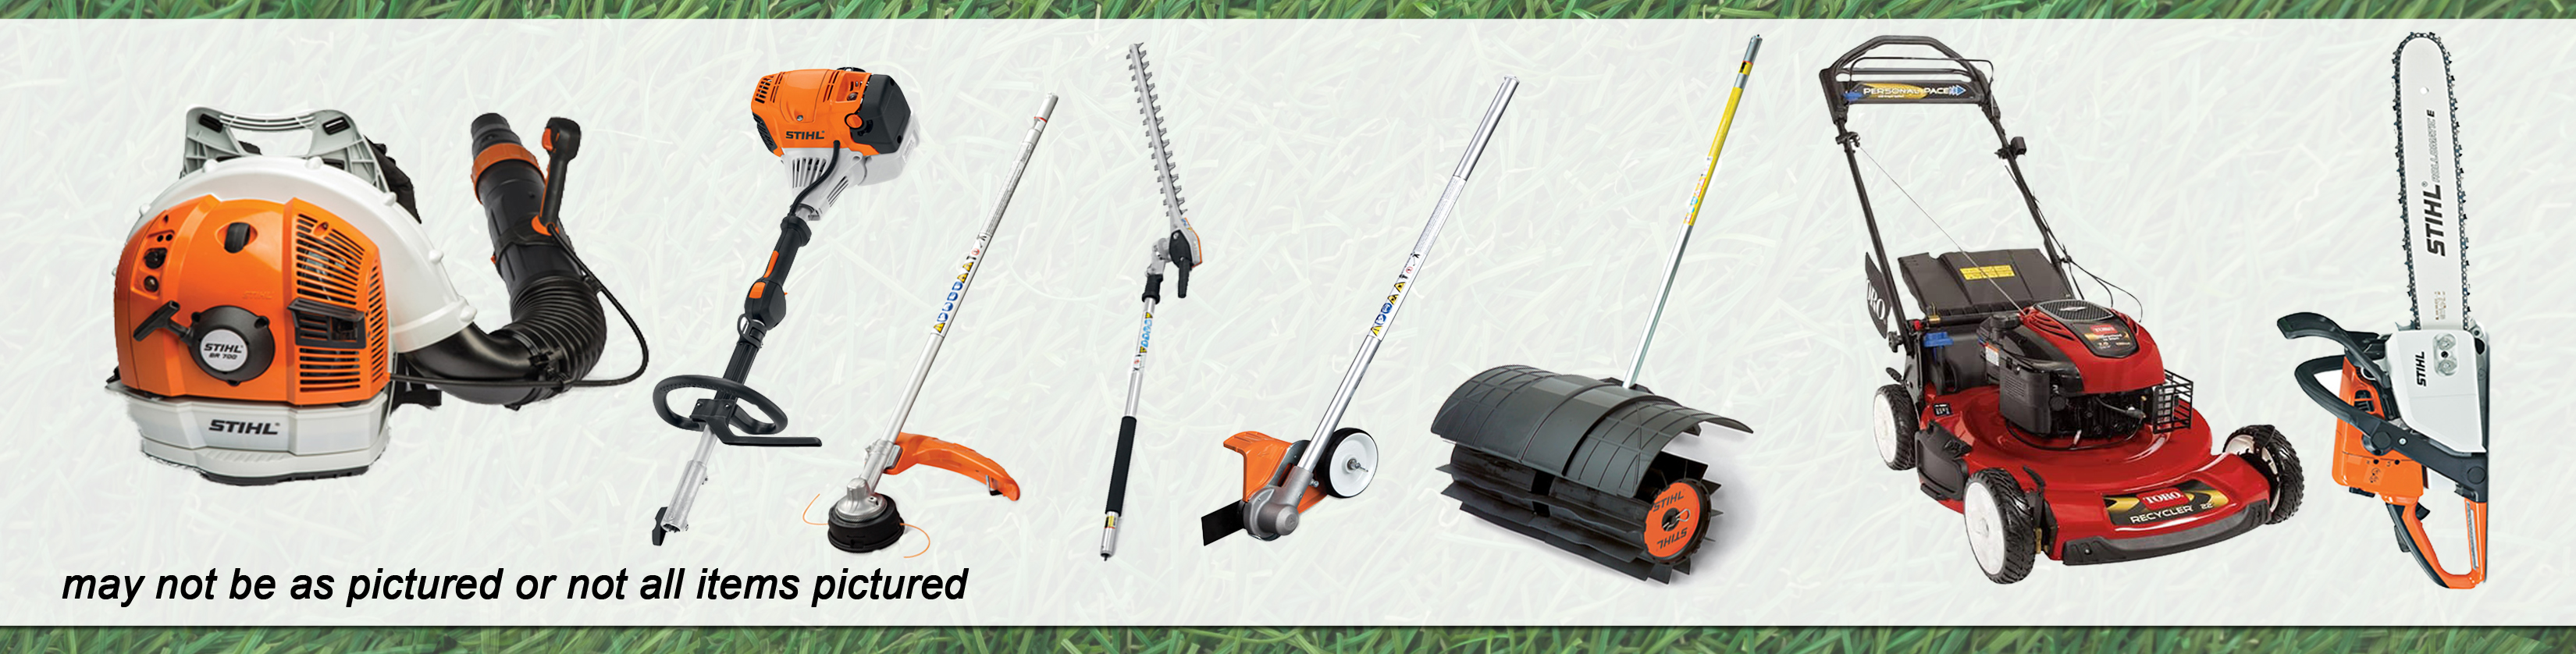 Win a 9 piece set of power tools for your home!